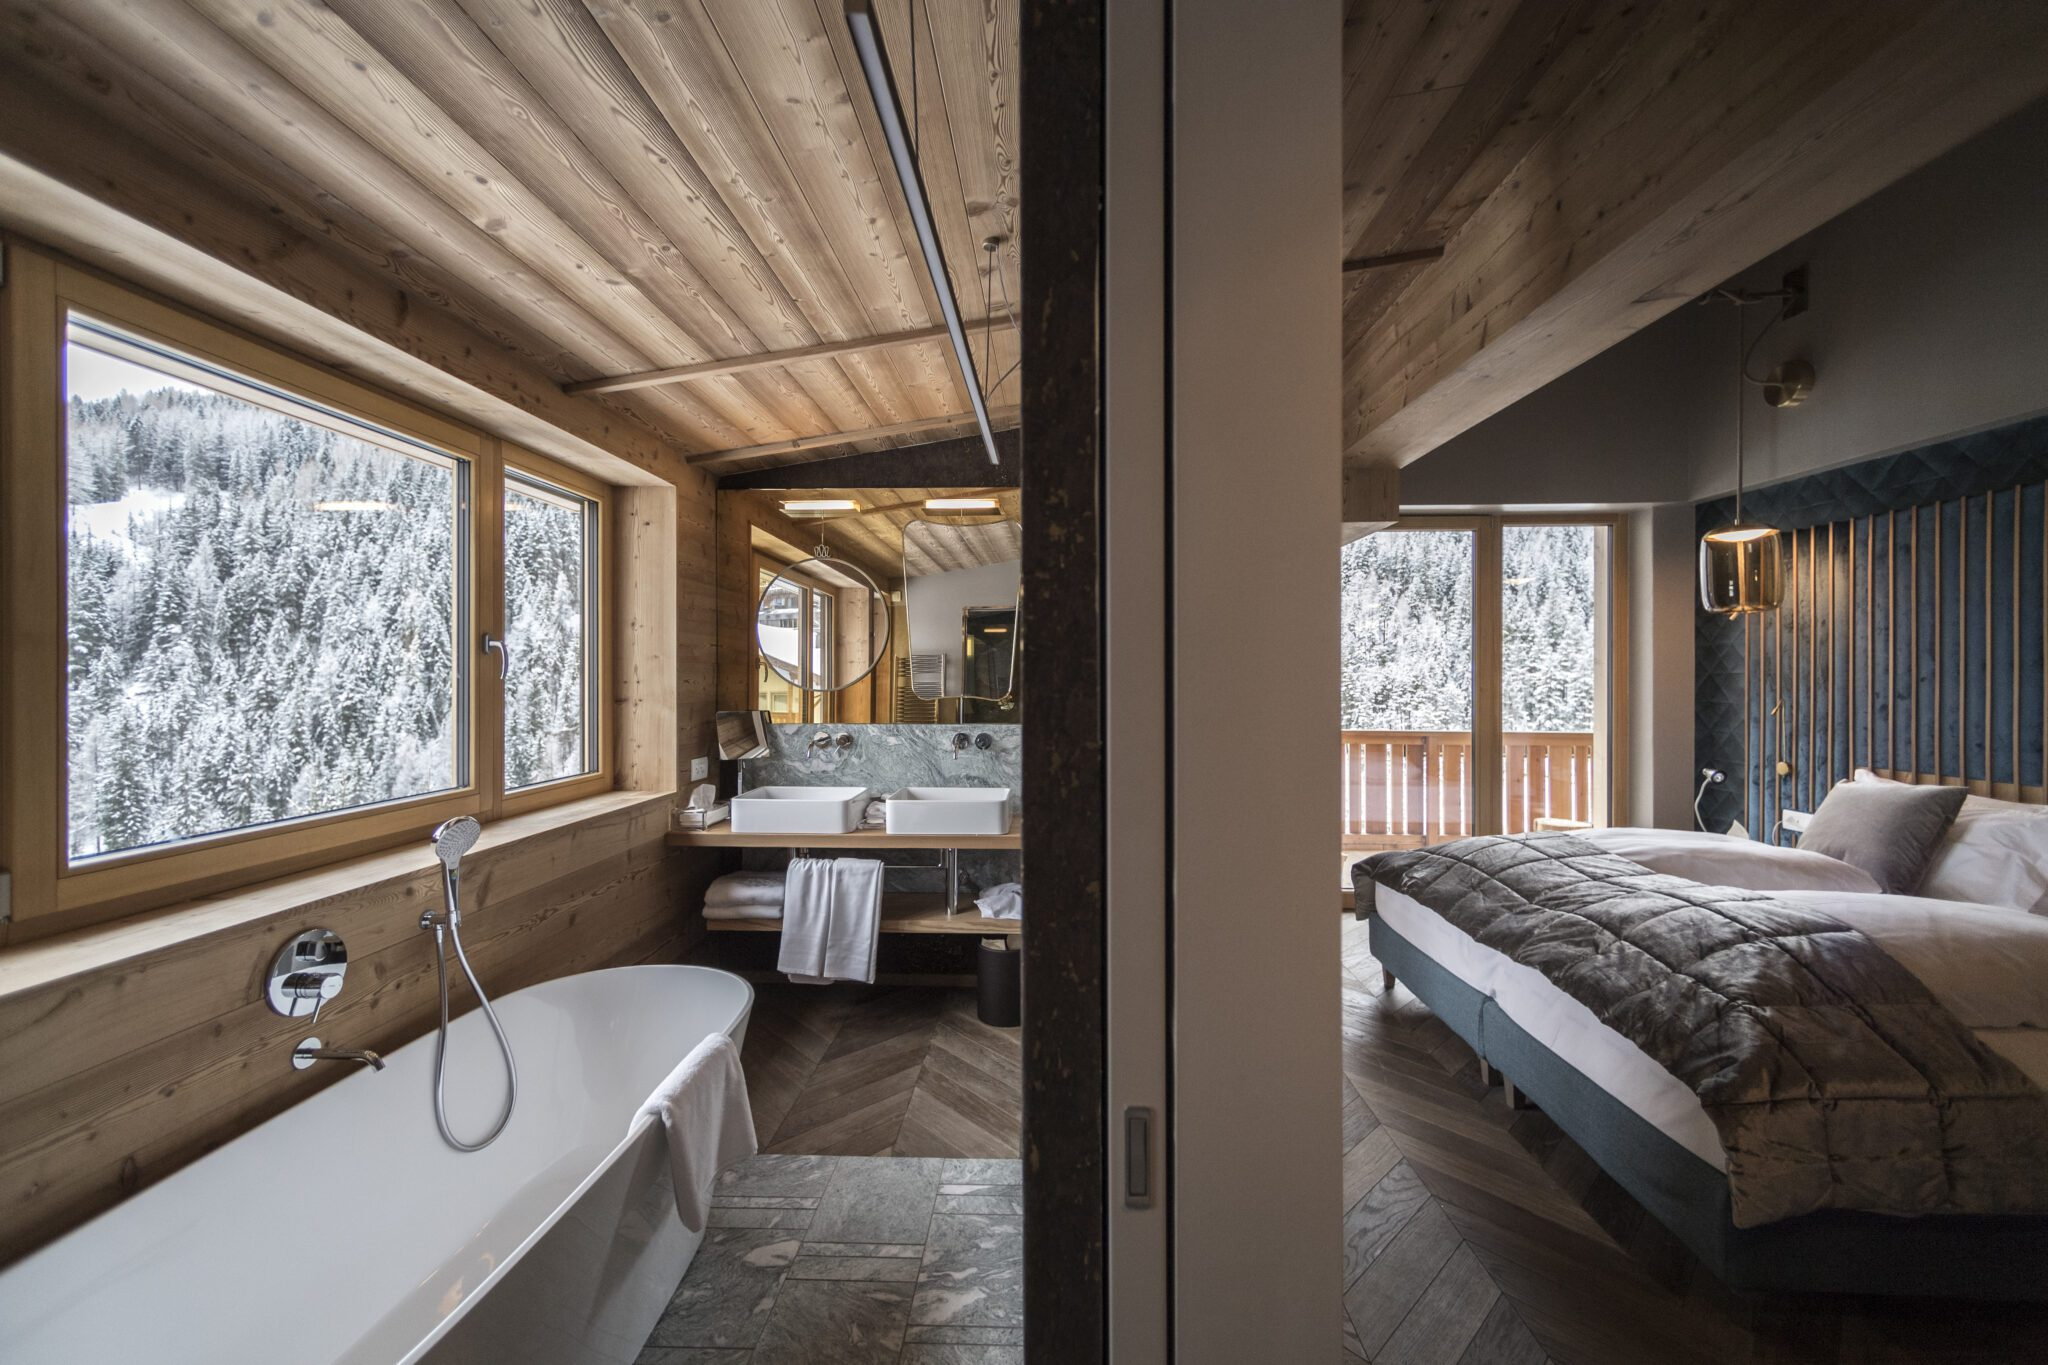 Nest Italy: Penthouse Suite in San Cassiano